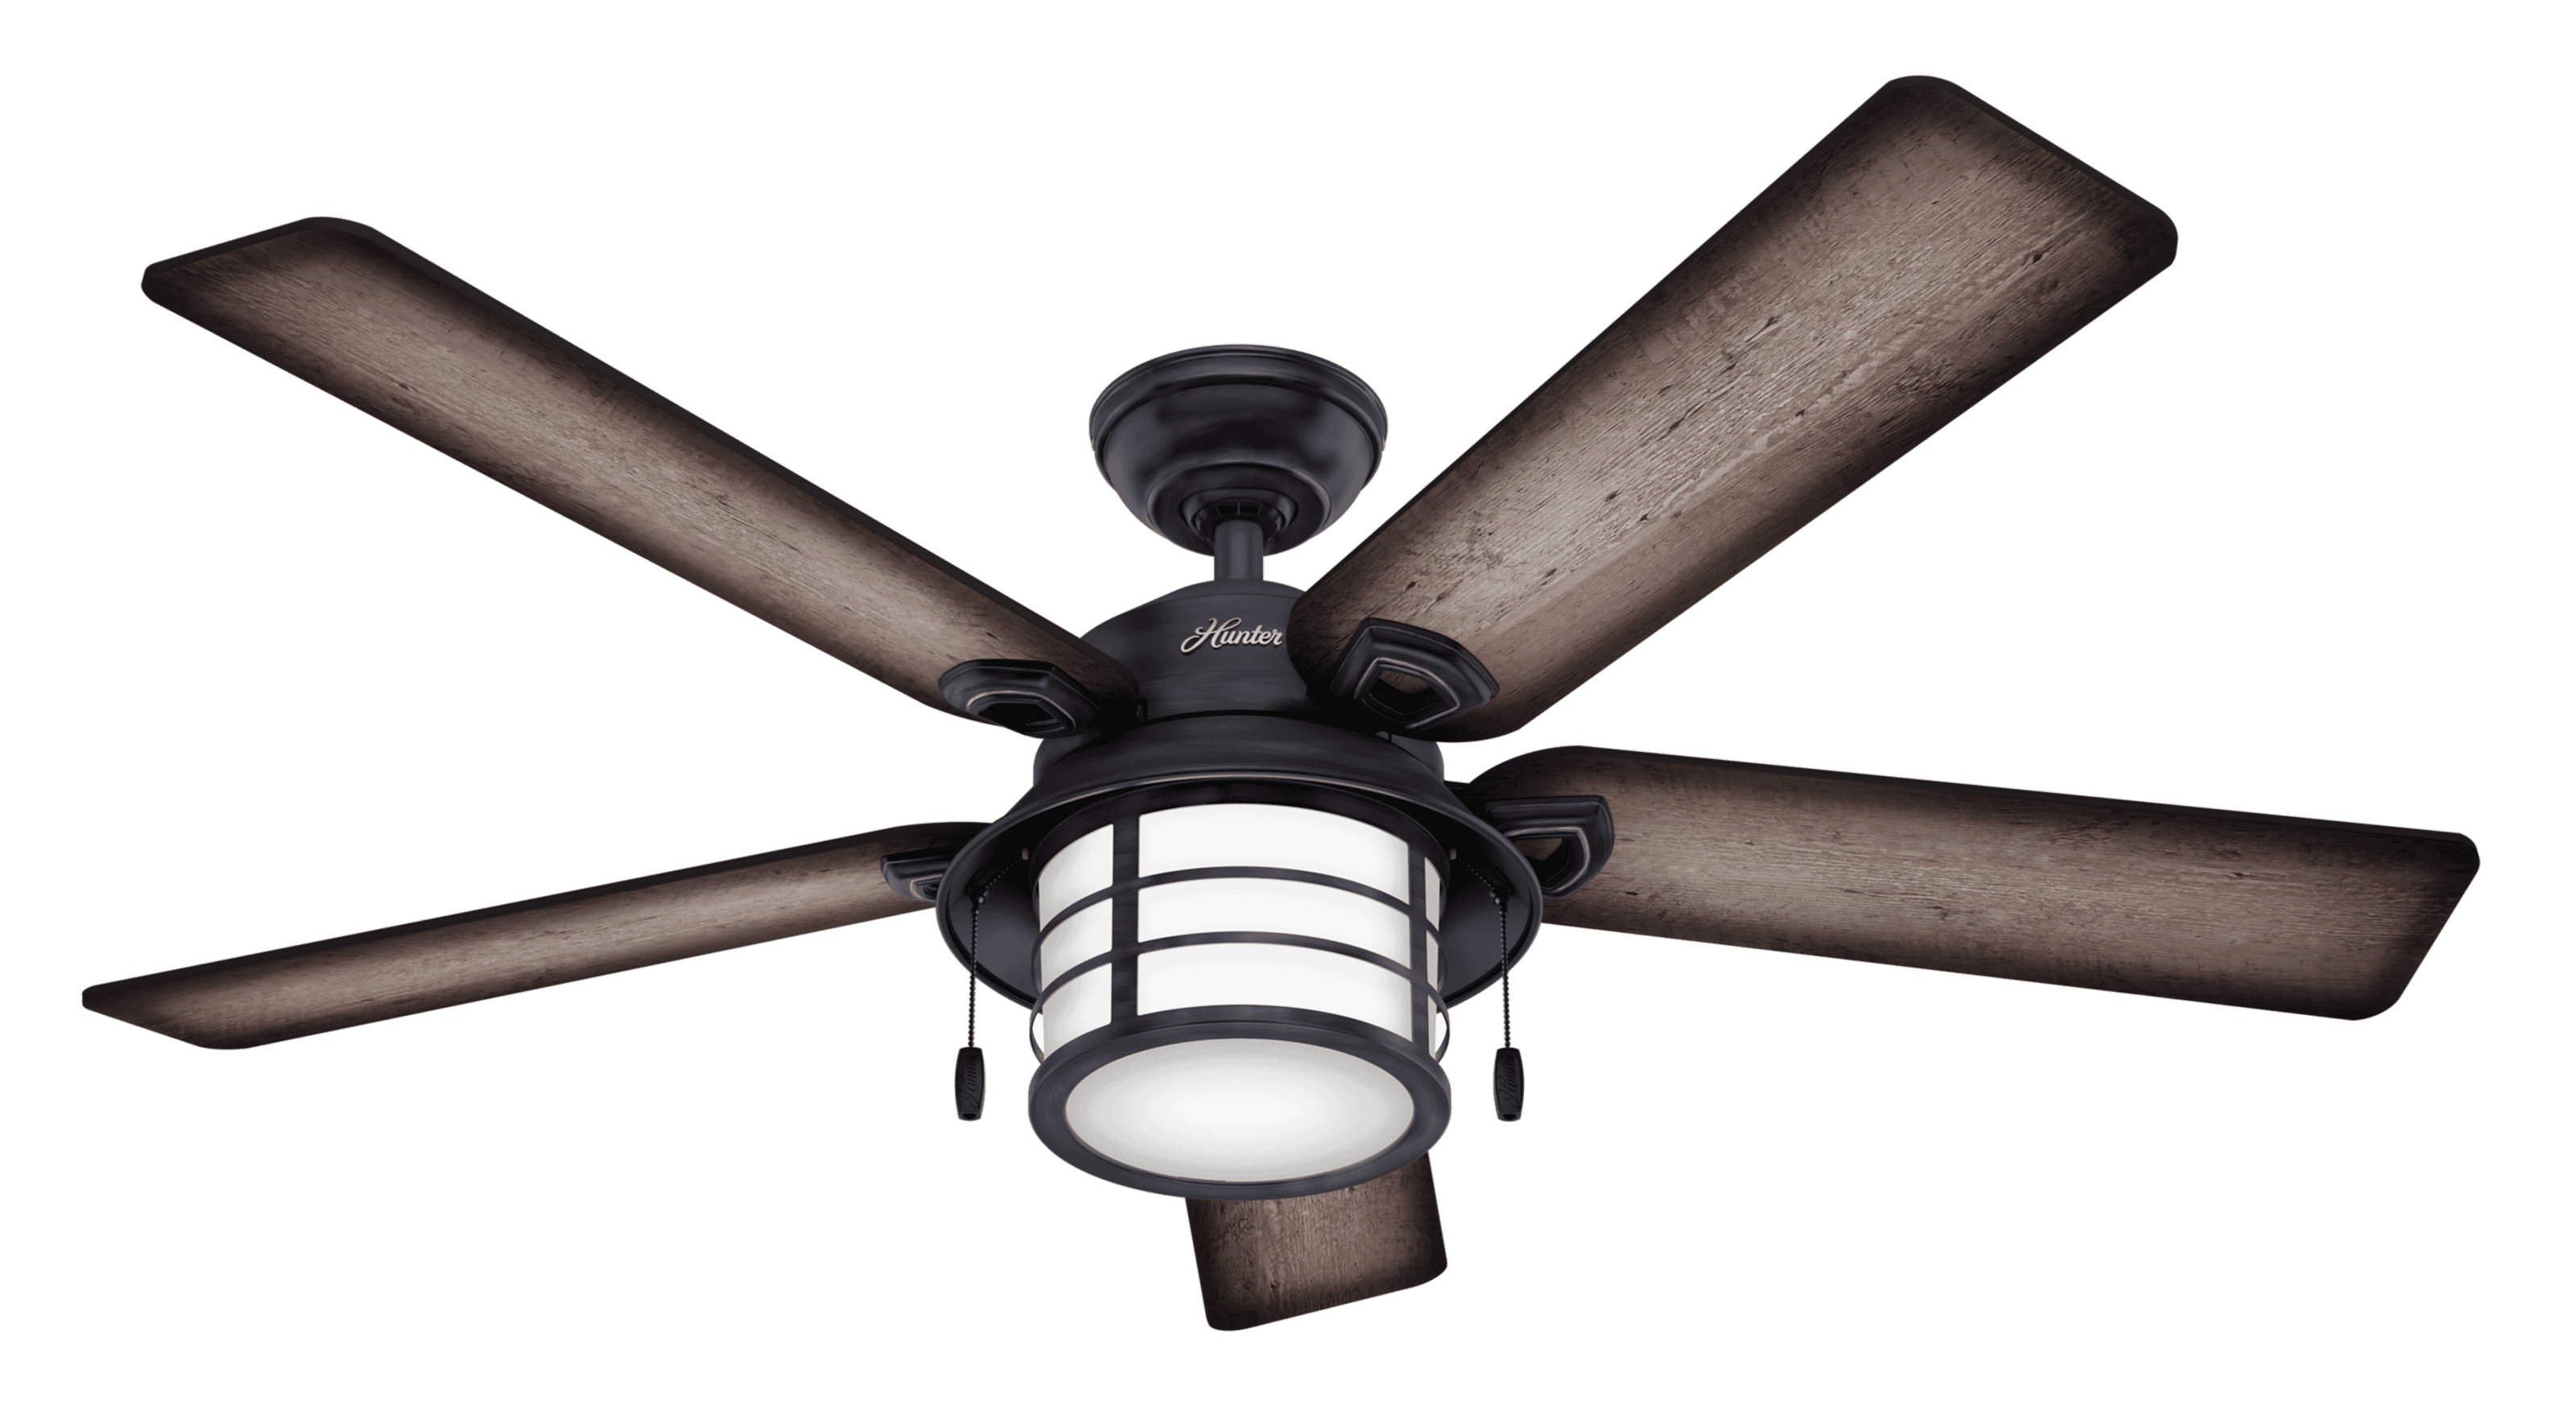 Hunter Fans Key Biscayne 2-Light 54-inch Indoor/Outdoor Ceiling Fan in Weathered Zinc